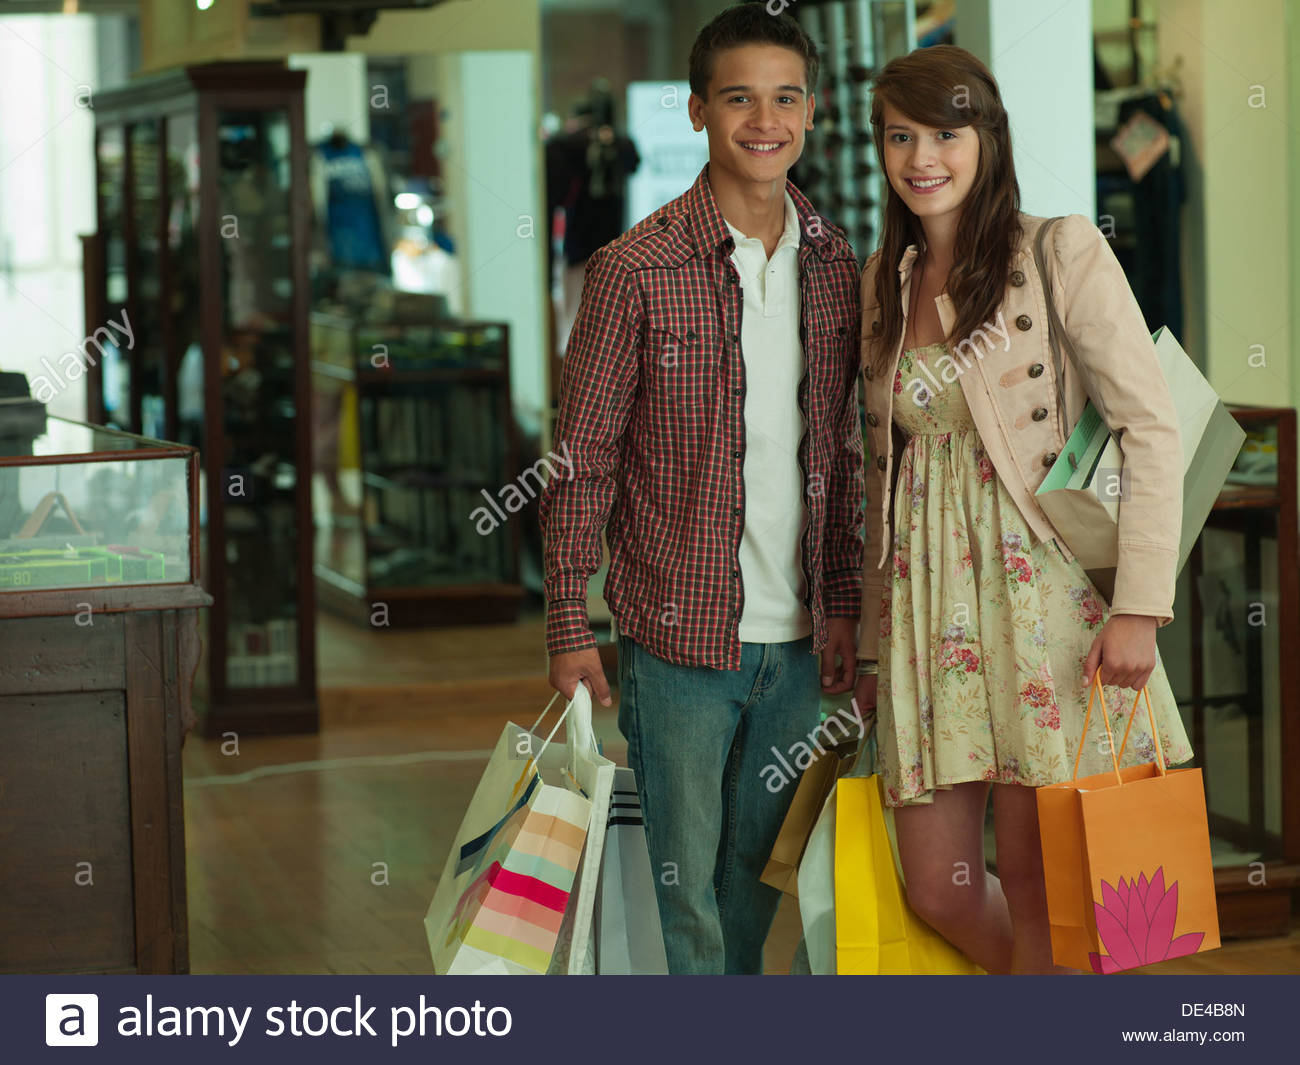 Smiling couple carrying shopping bags in clothing store - Stock Image